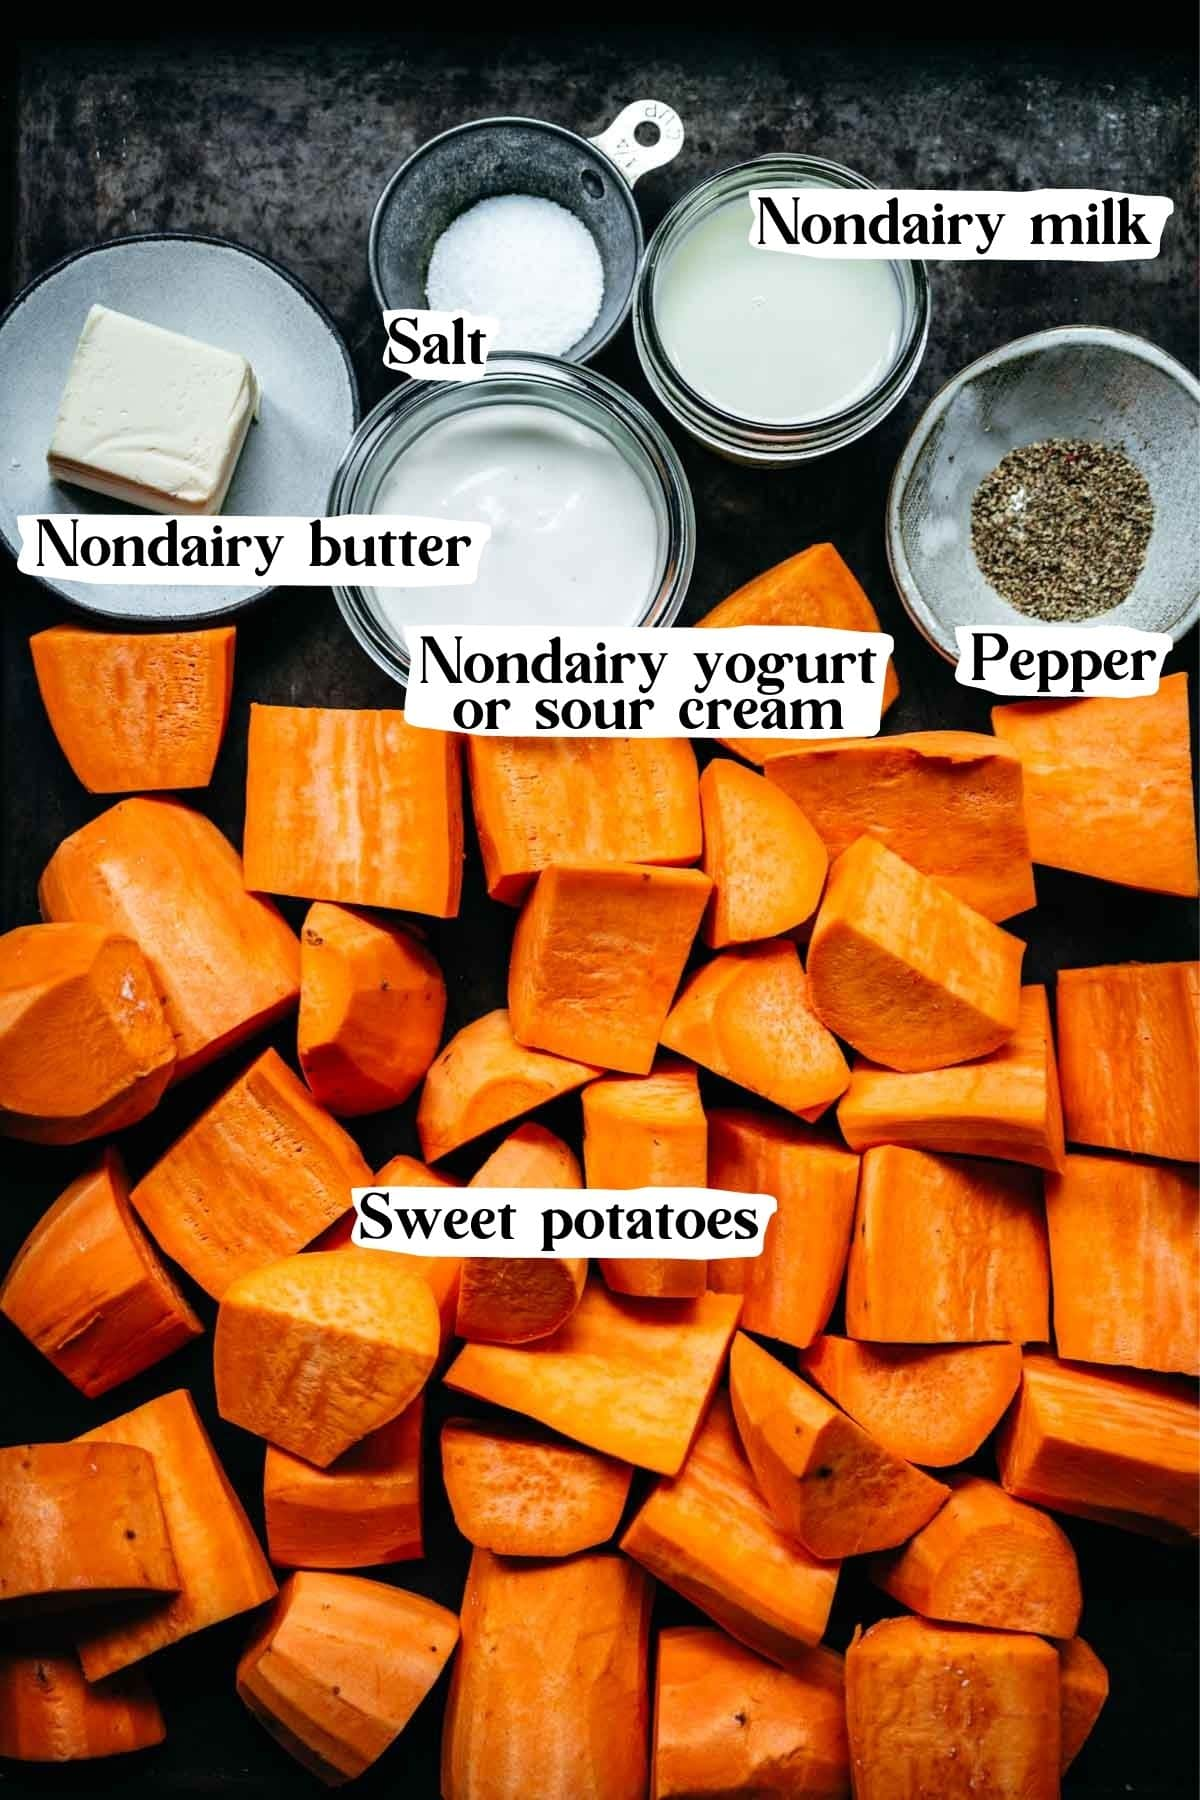 Overhead view of mashed sweet potato ingredients, including sweet potatoes and nondairy butter.